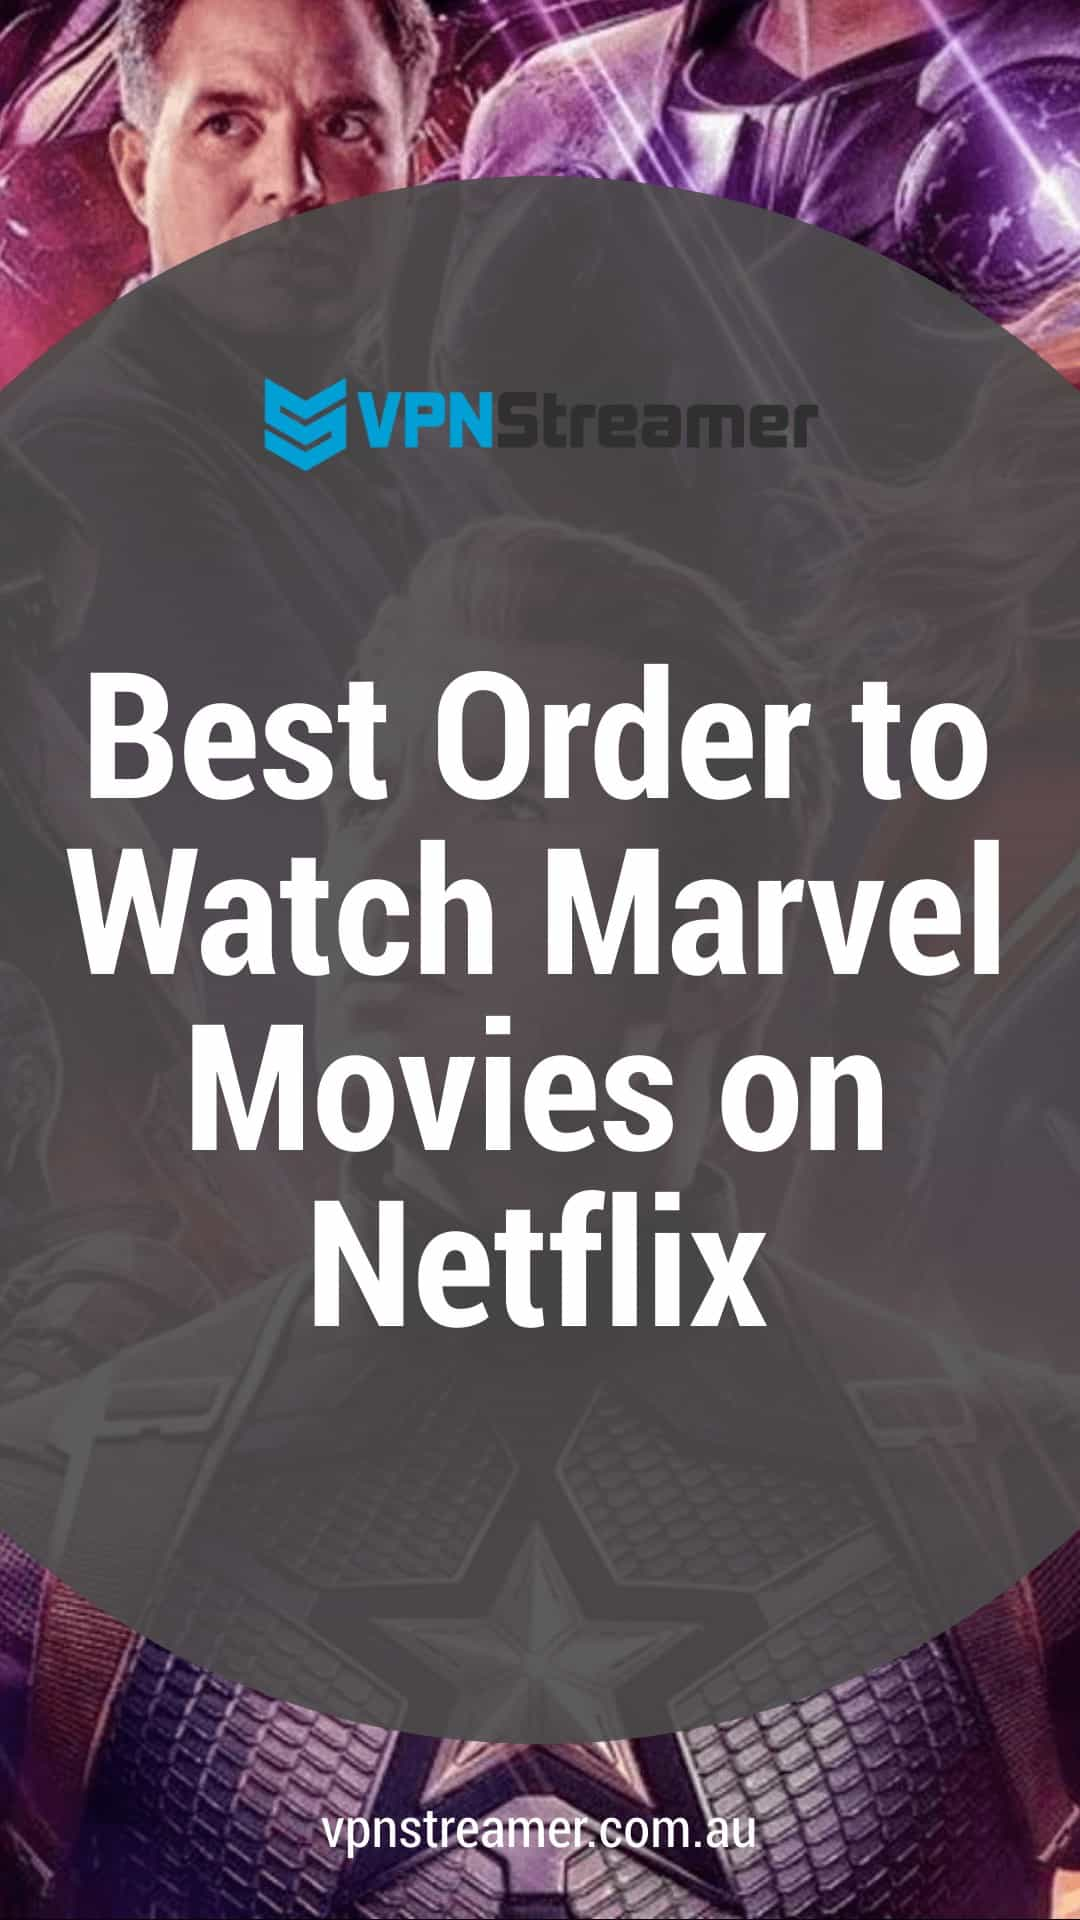 Best Order to Watch Marvel Movies on Netflix